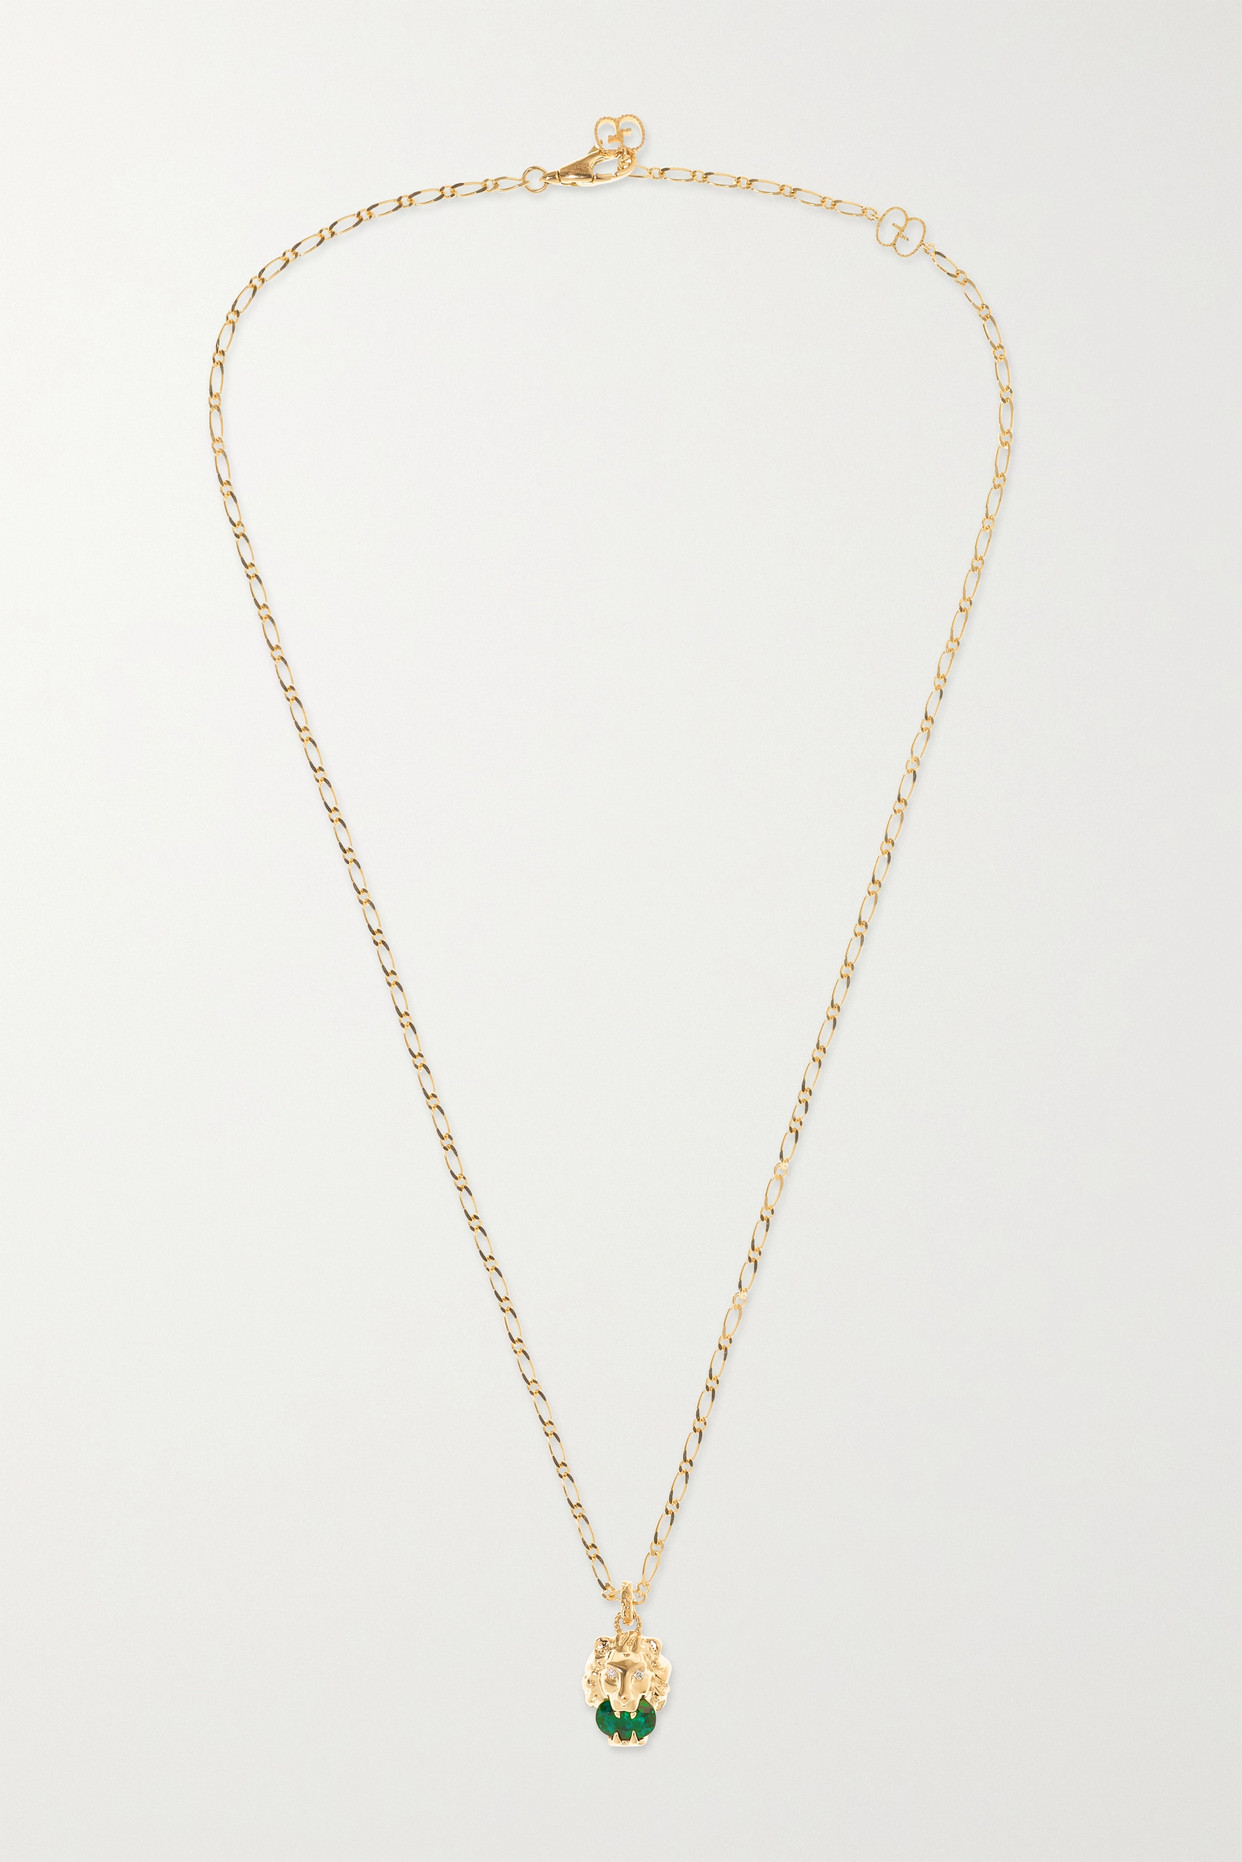 GUCCI - 18-karat Gold, Chrome Diopside And Diamond Necklace - one size